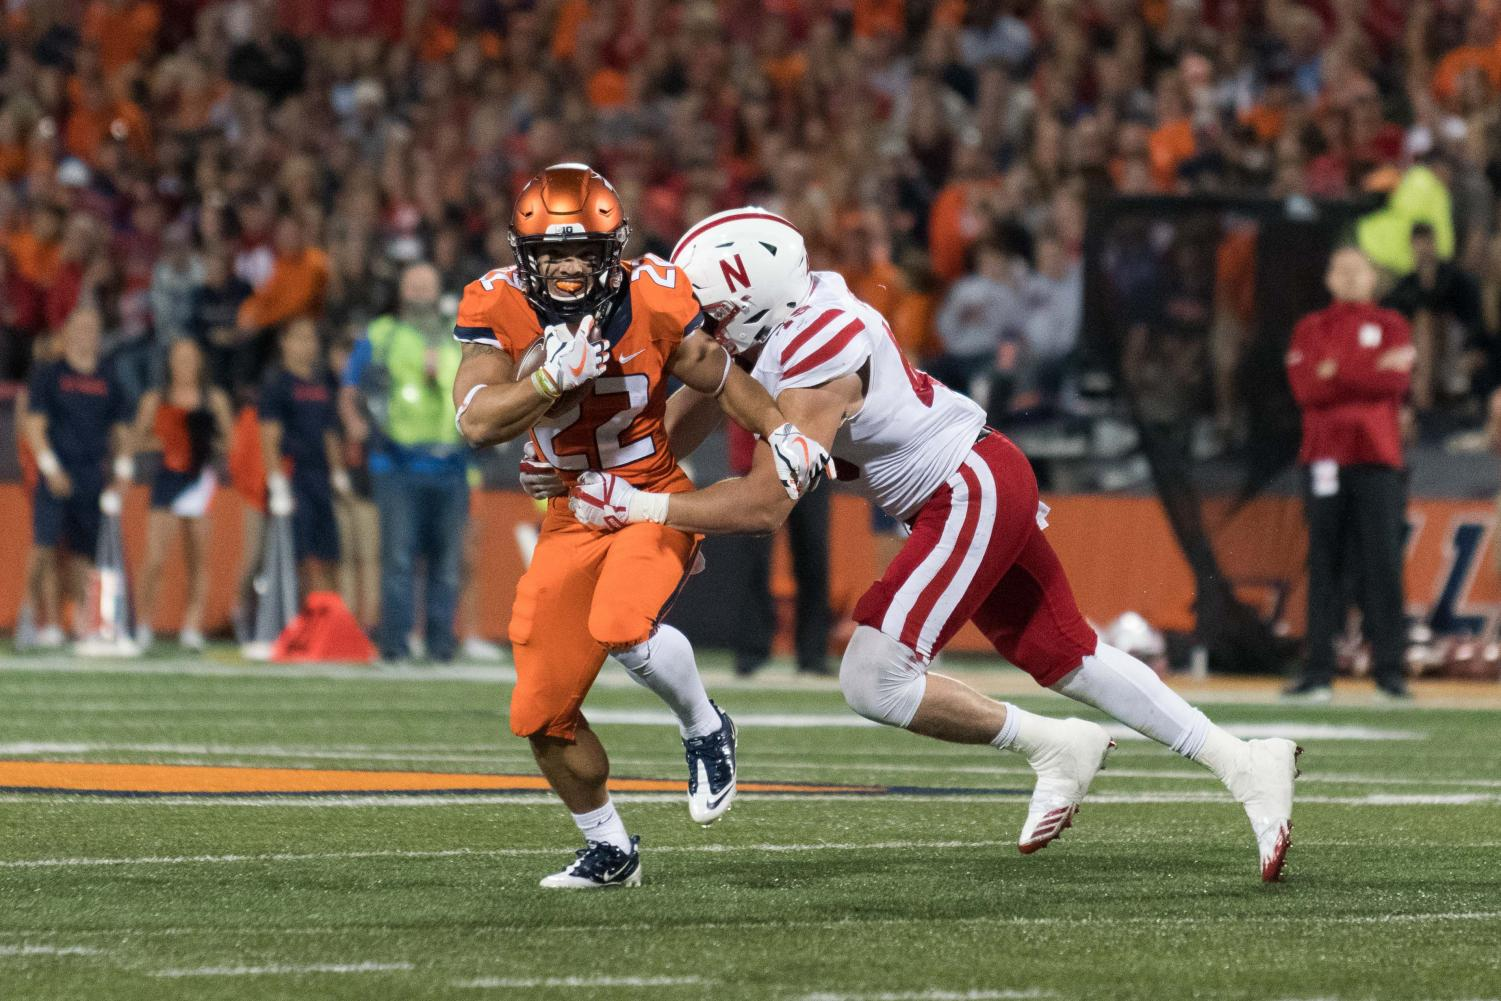 Illinois running back Kendrick Foster is tackled during the game against Nebraska at Memorial Stadium.  The Illini fell 28-6.